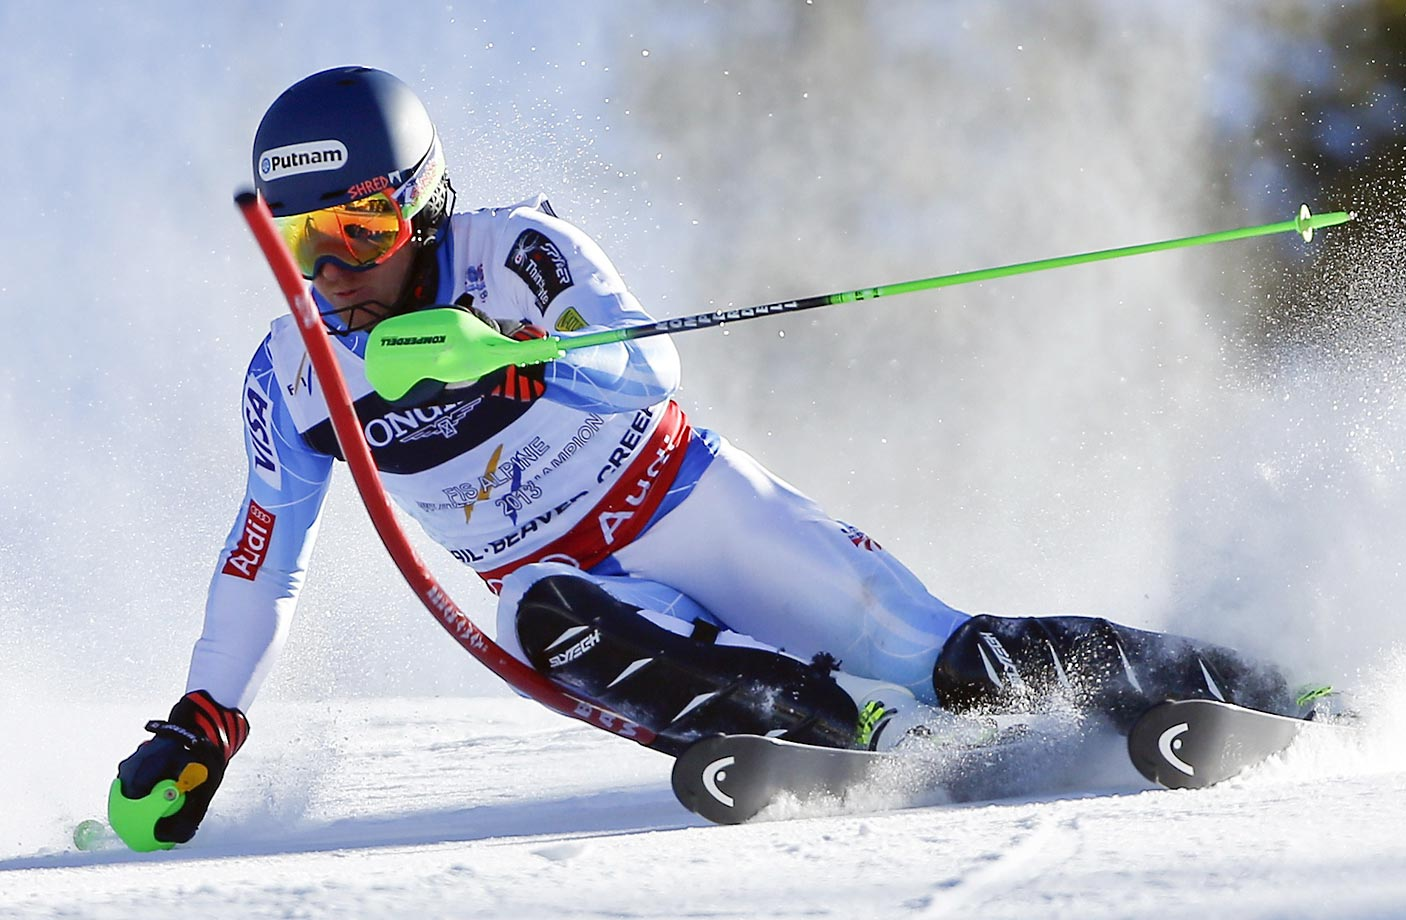 United States' Ted Ligety races during the slalom portion of the Alpine combined competition at the Alpine skiing world championships in Beaver Creek, Colo.